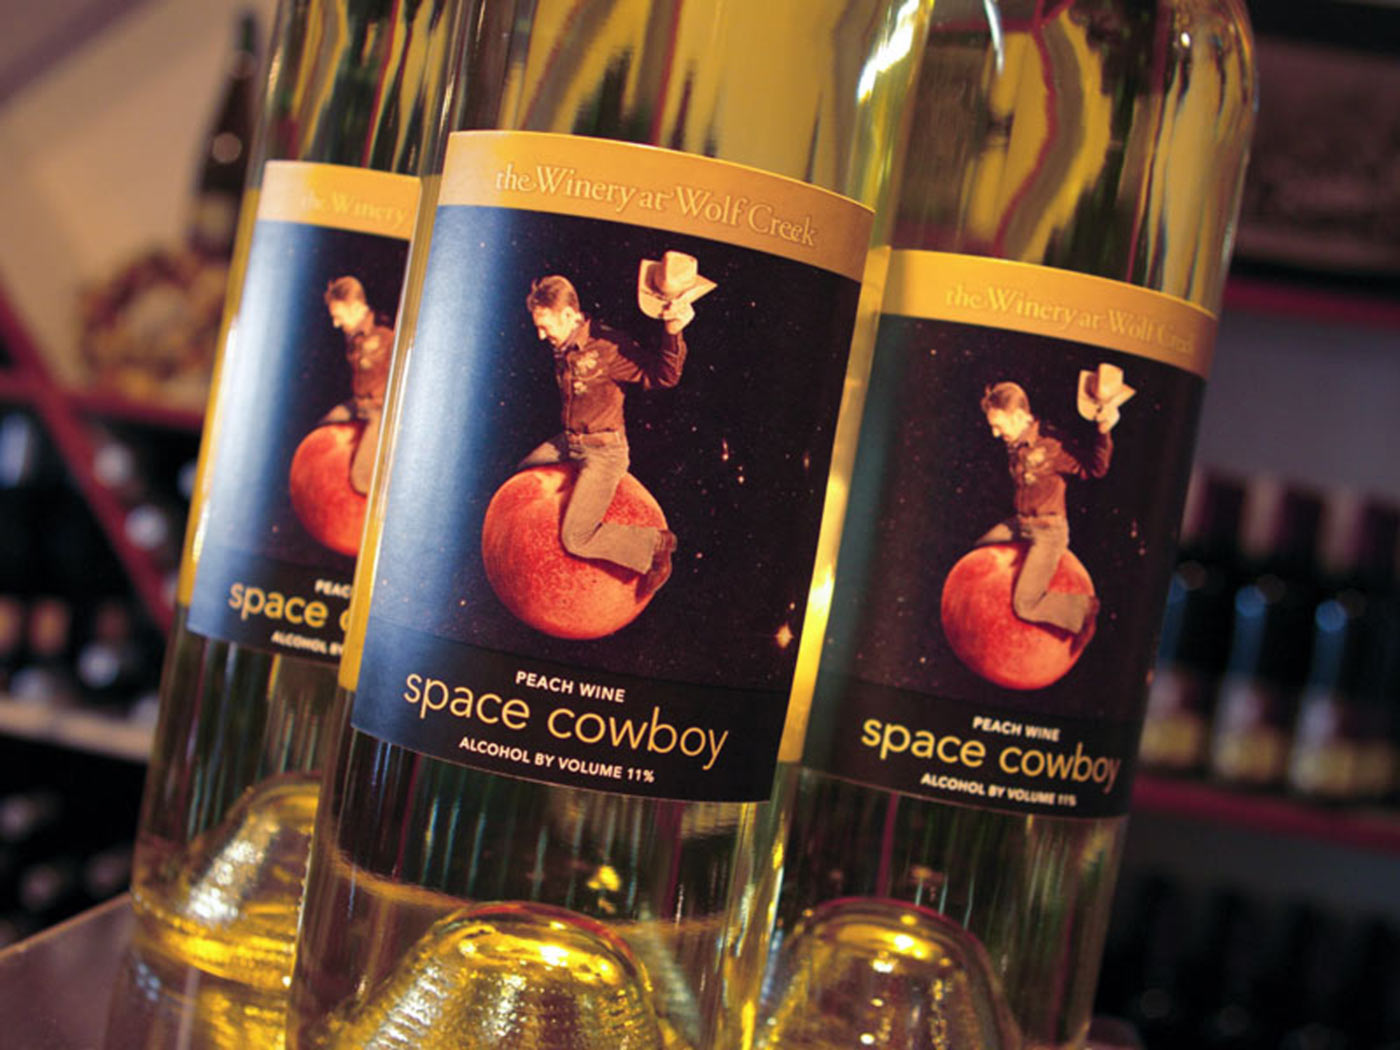 Space Cowboy wine label